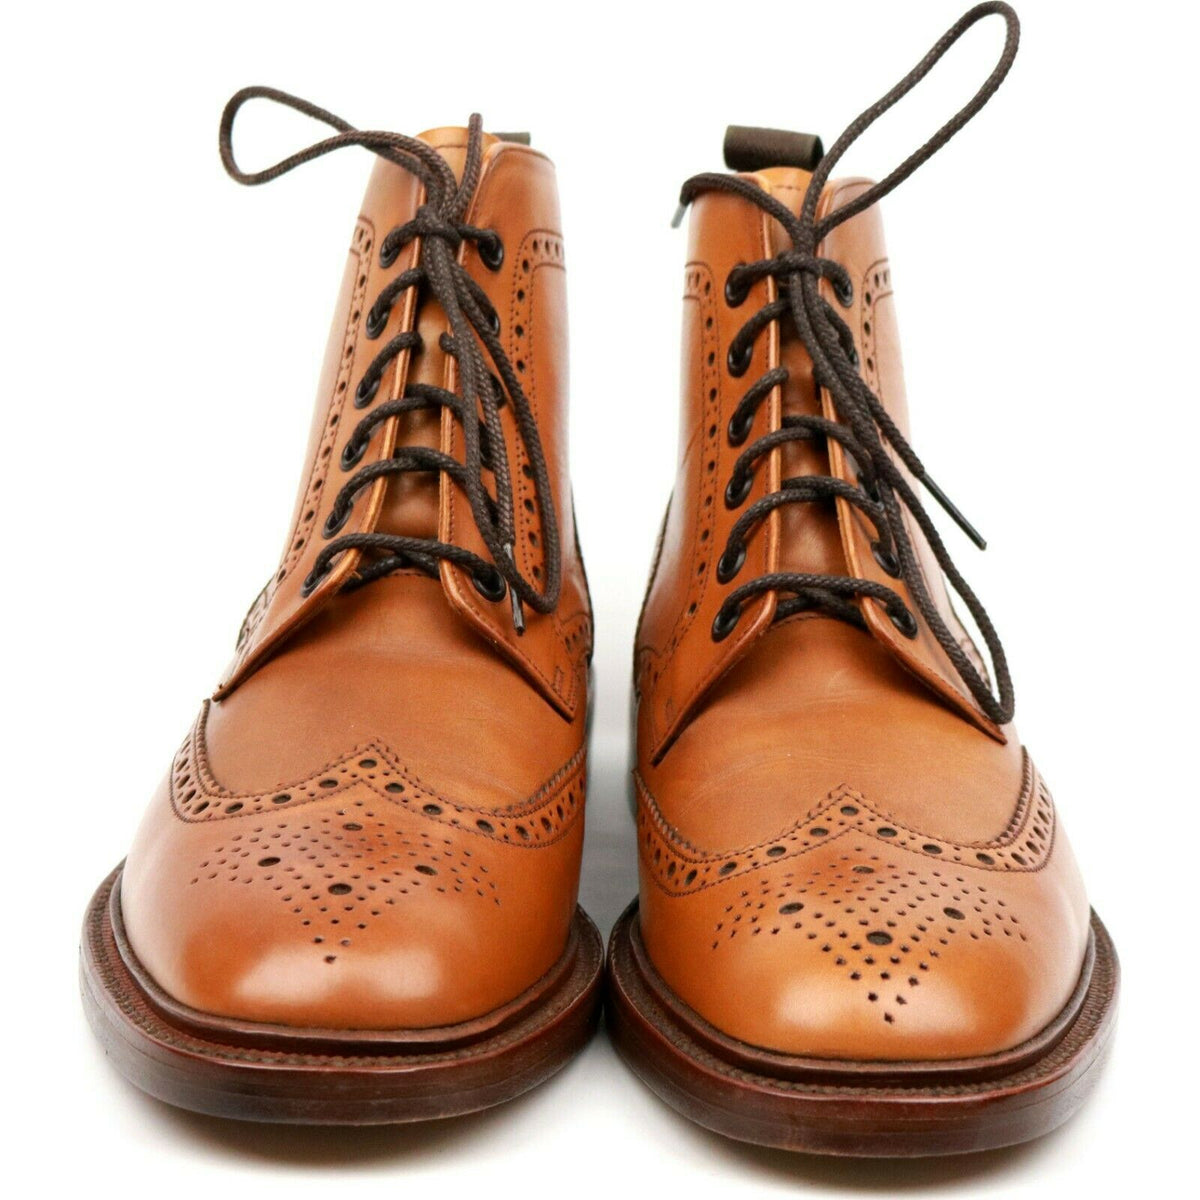 Loake 1880 'Burford 2' Tan Brown Leather Brogue Boots UK 8 F